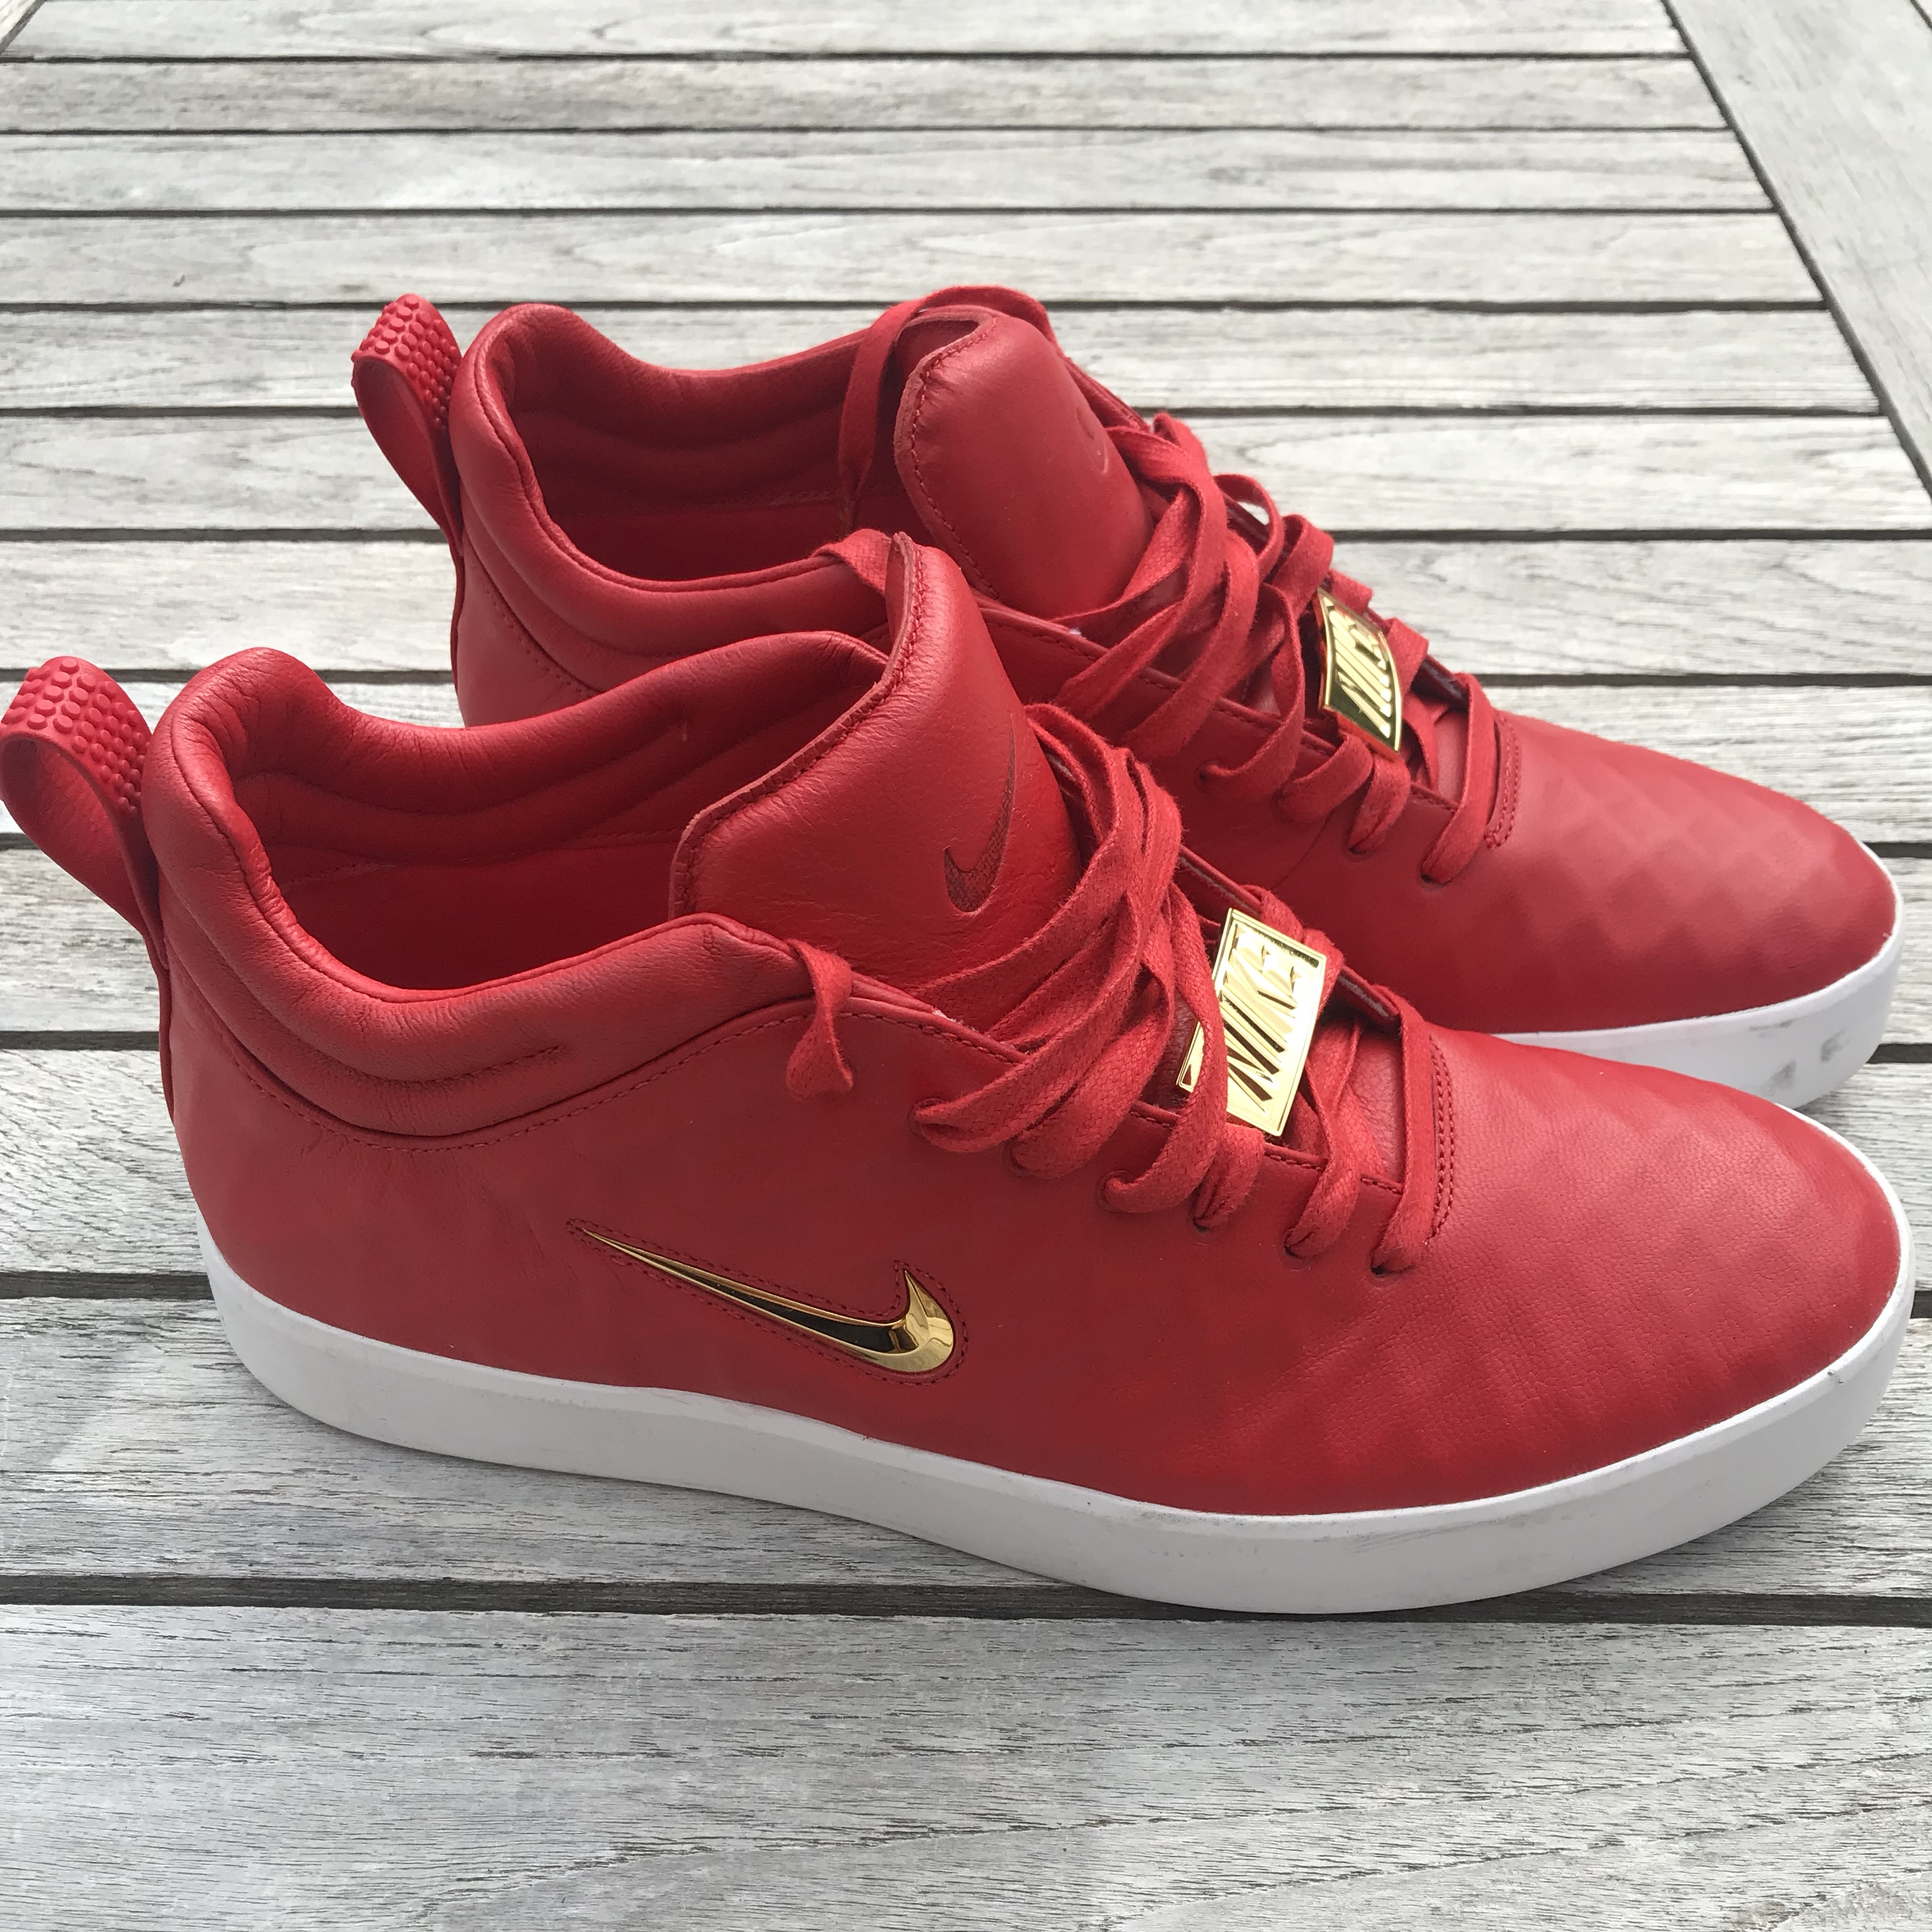 Red Nike Shoes - Leather with a gold